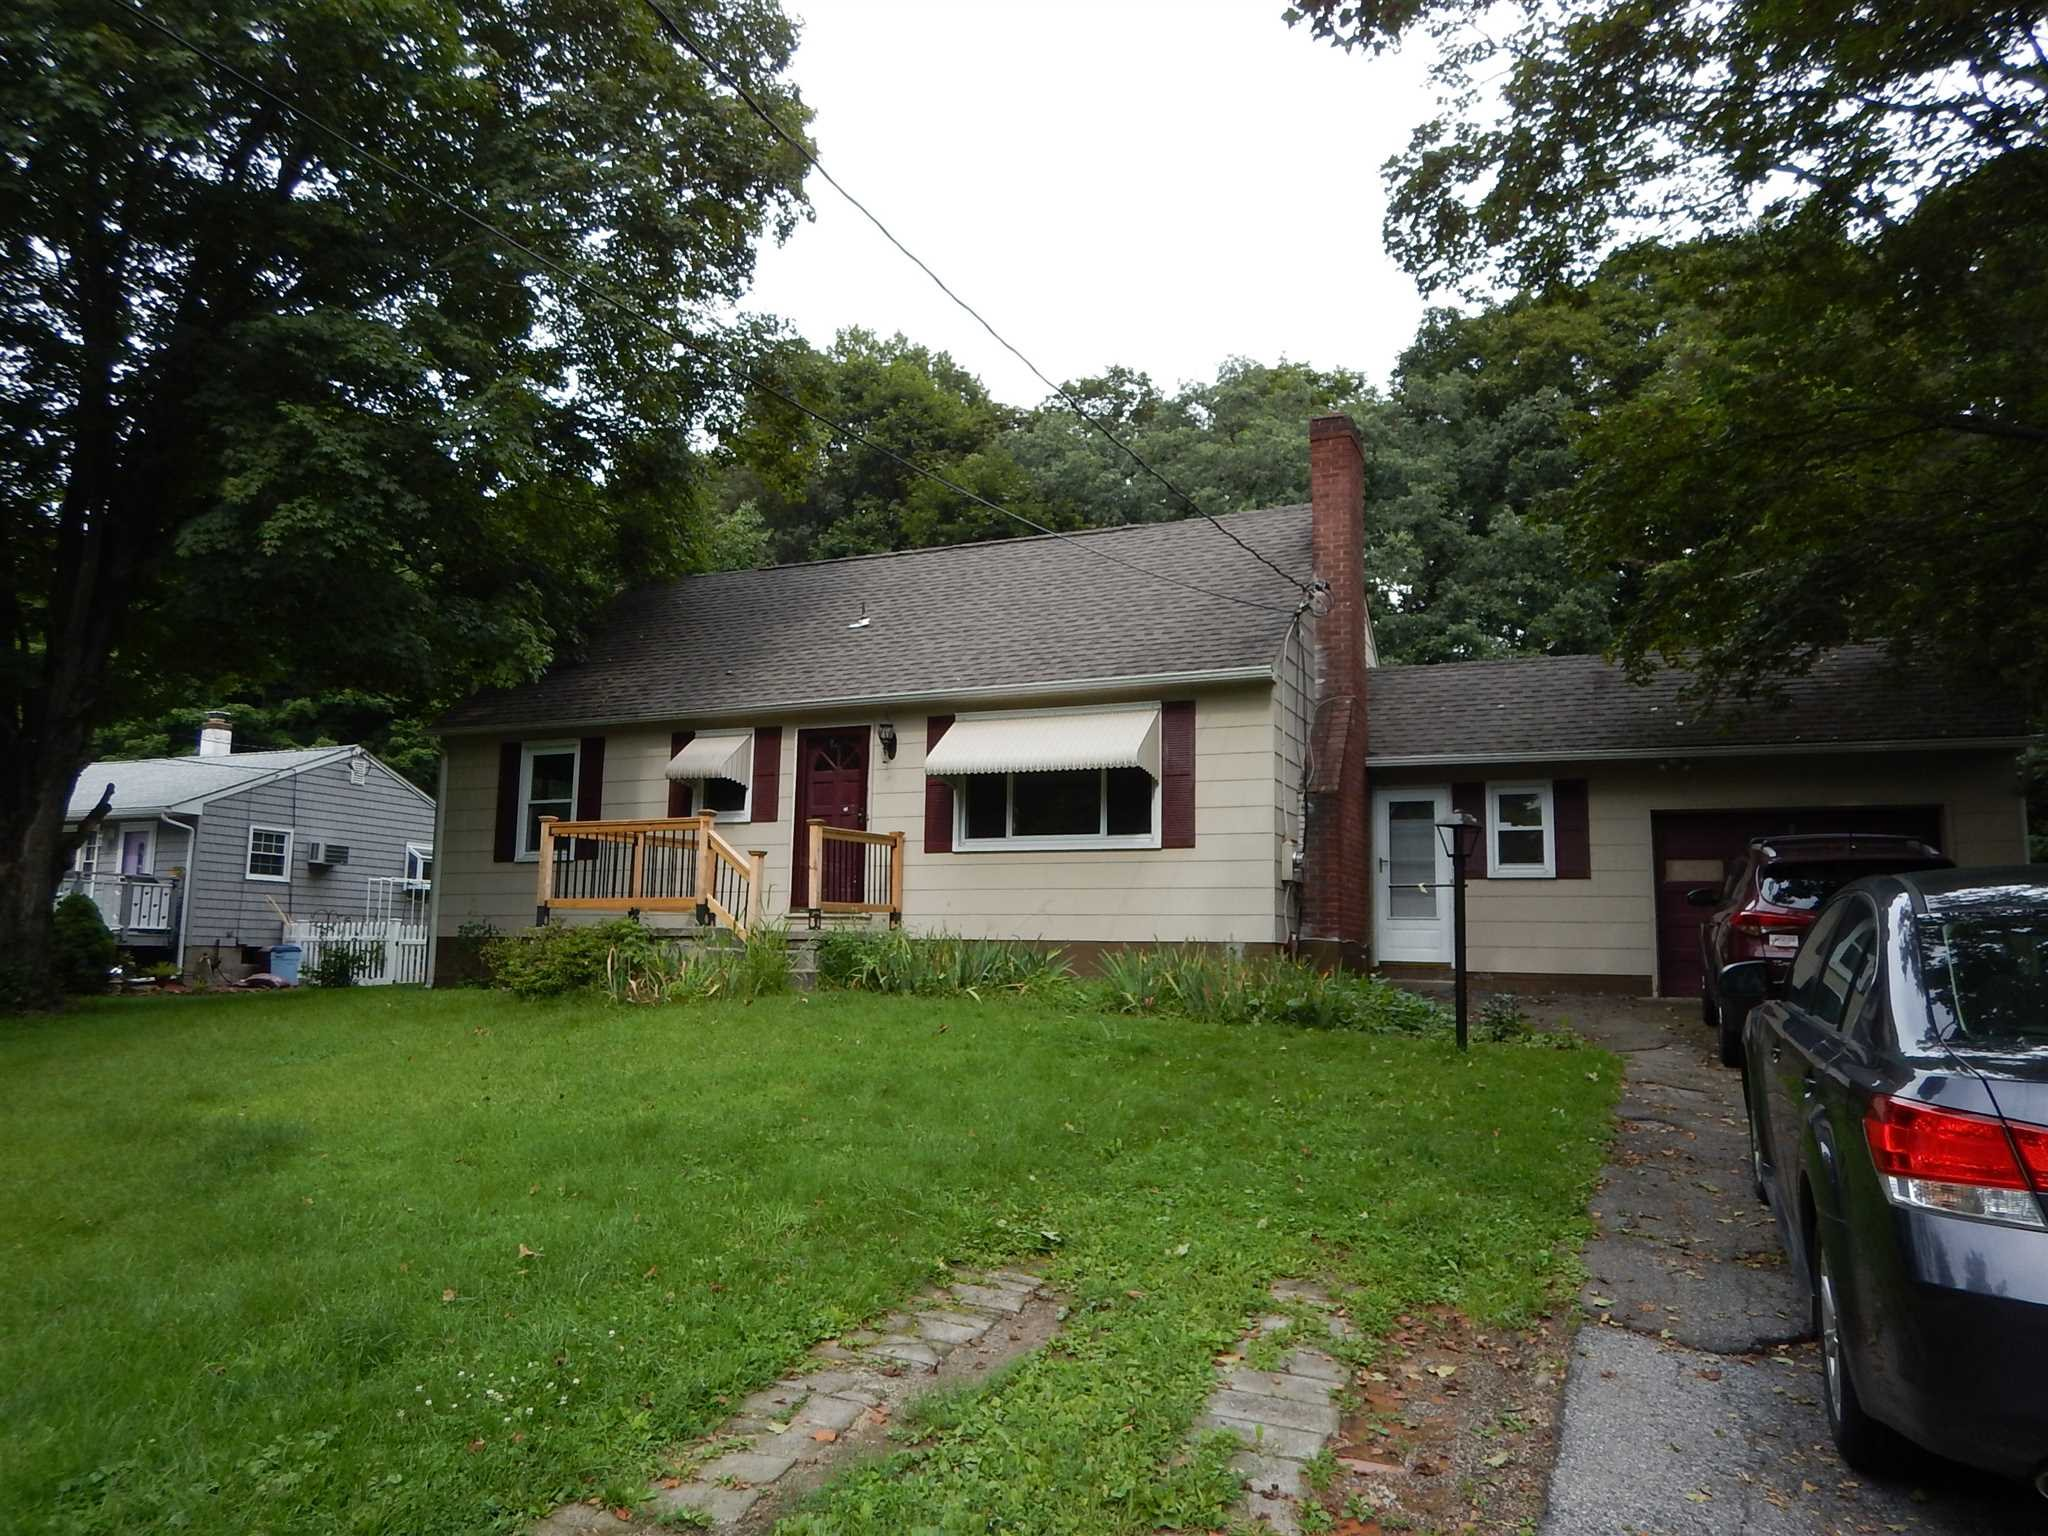 Single Family Home for Sale at 8 VAN WERT Place 8 VAN WERT Place Hyde Park, New York 12538 United States